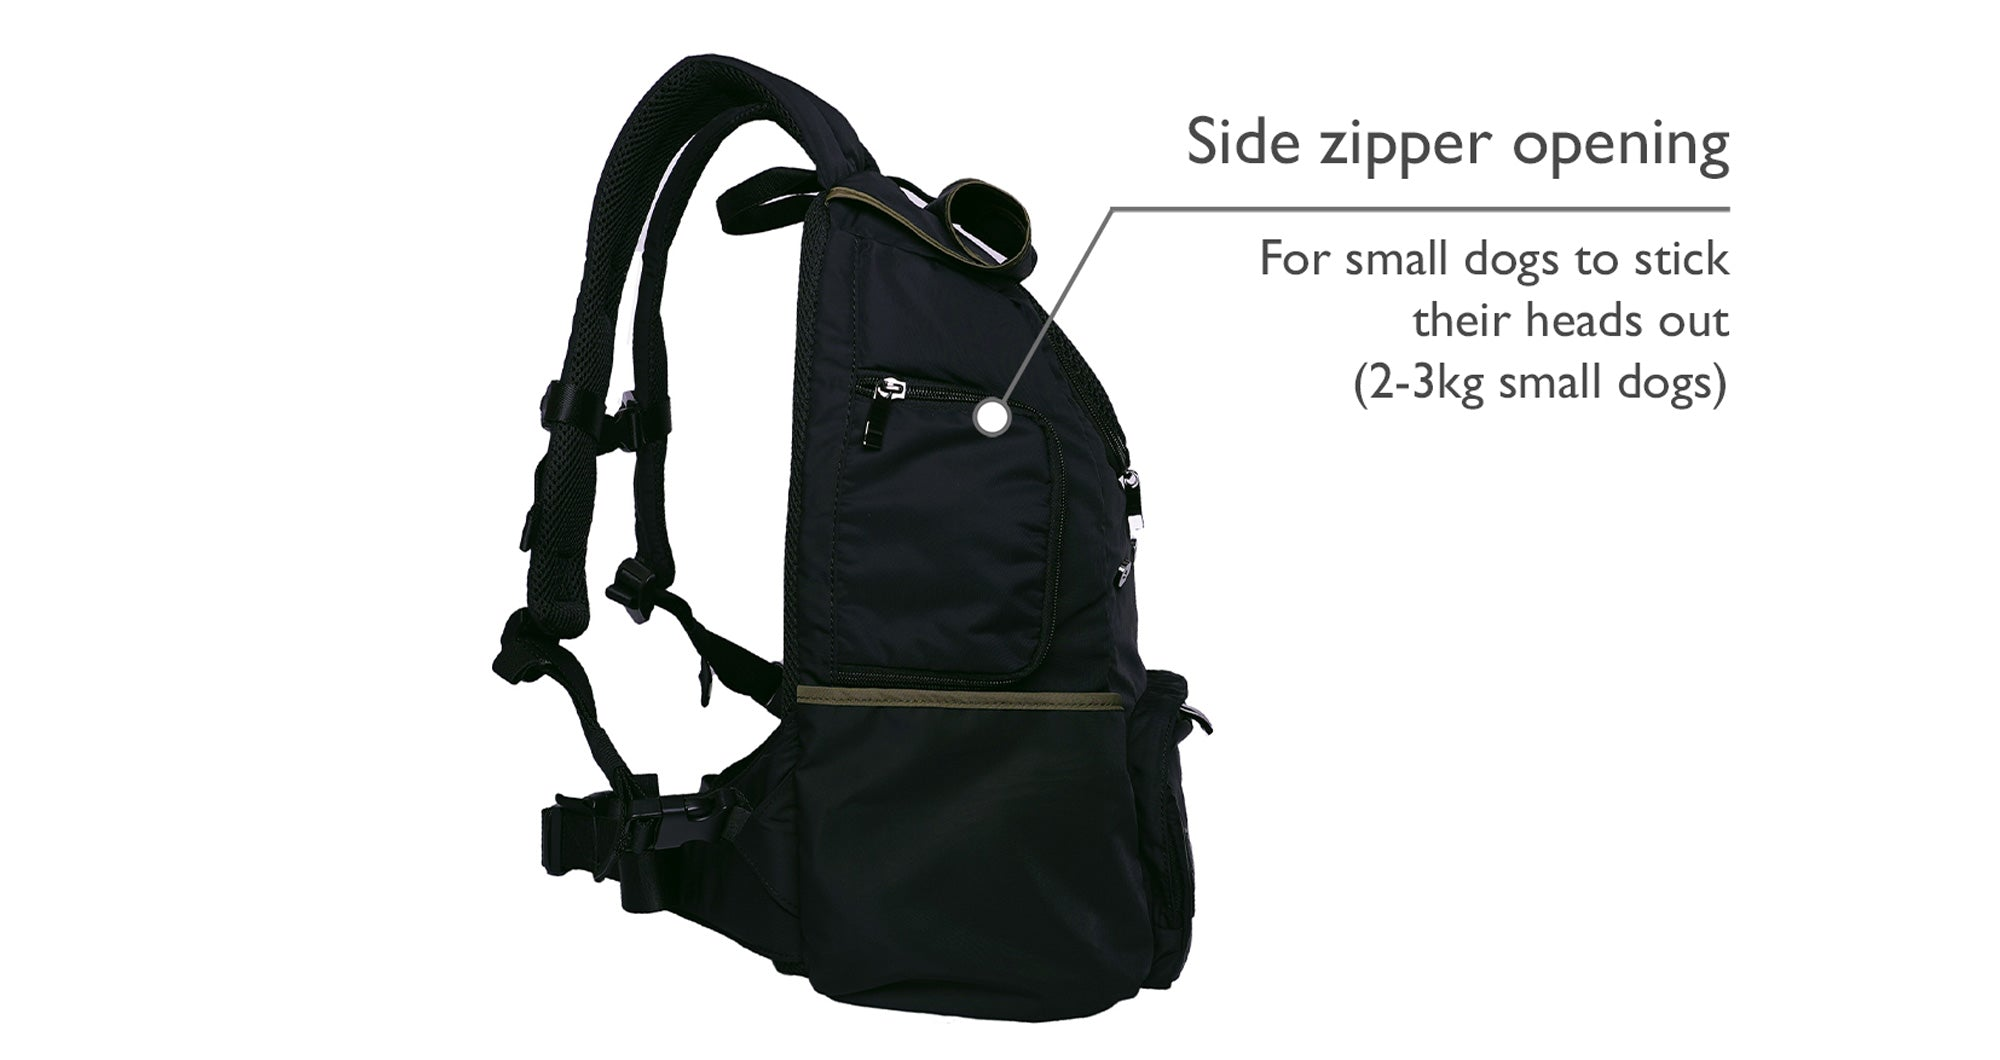 Black backpack pet carrier for small dog with a side zipper opening window